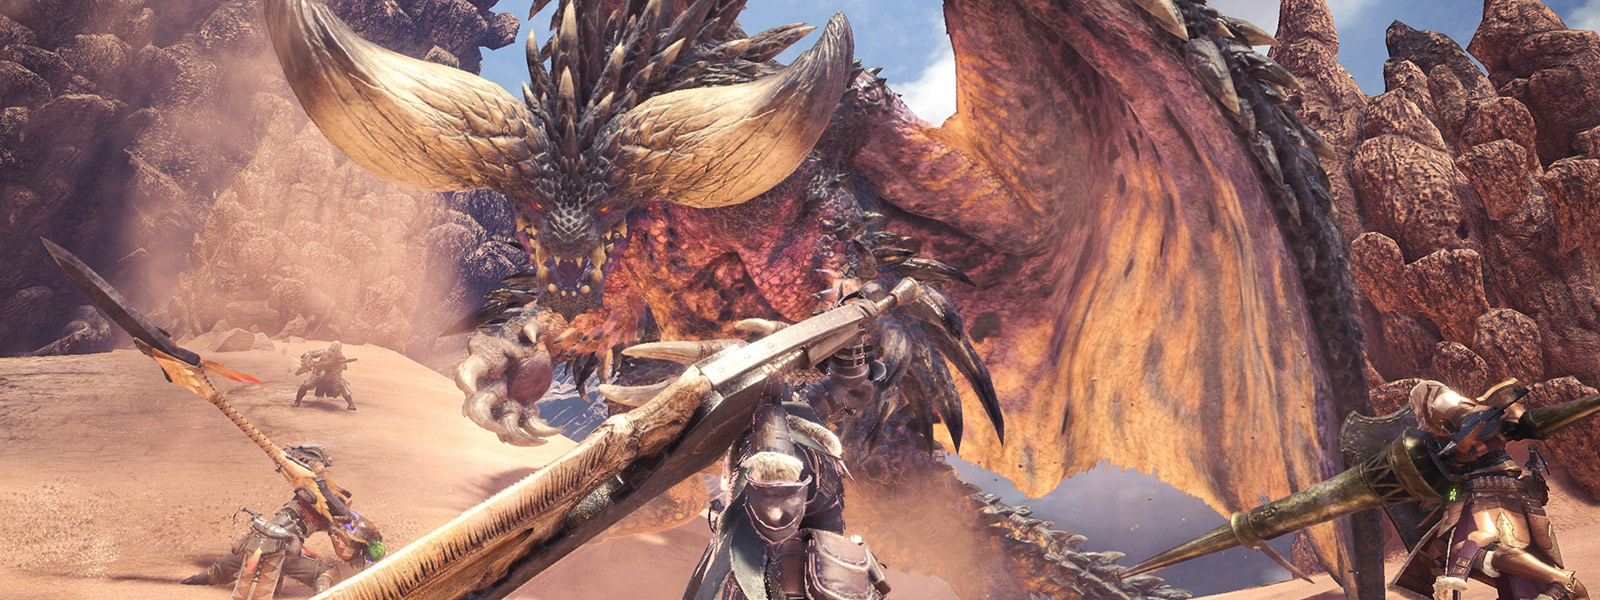 4 players team up against the Nergigante monster